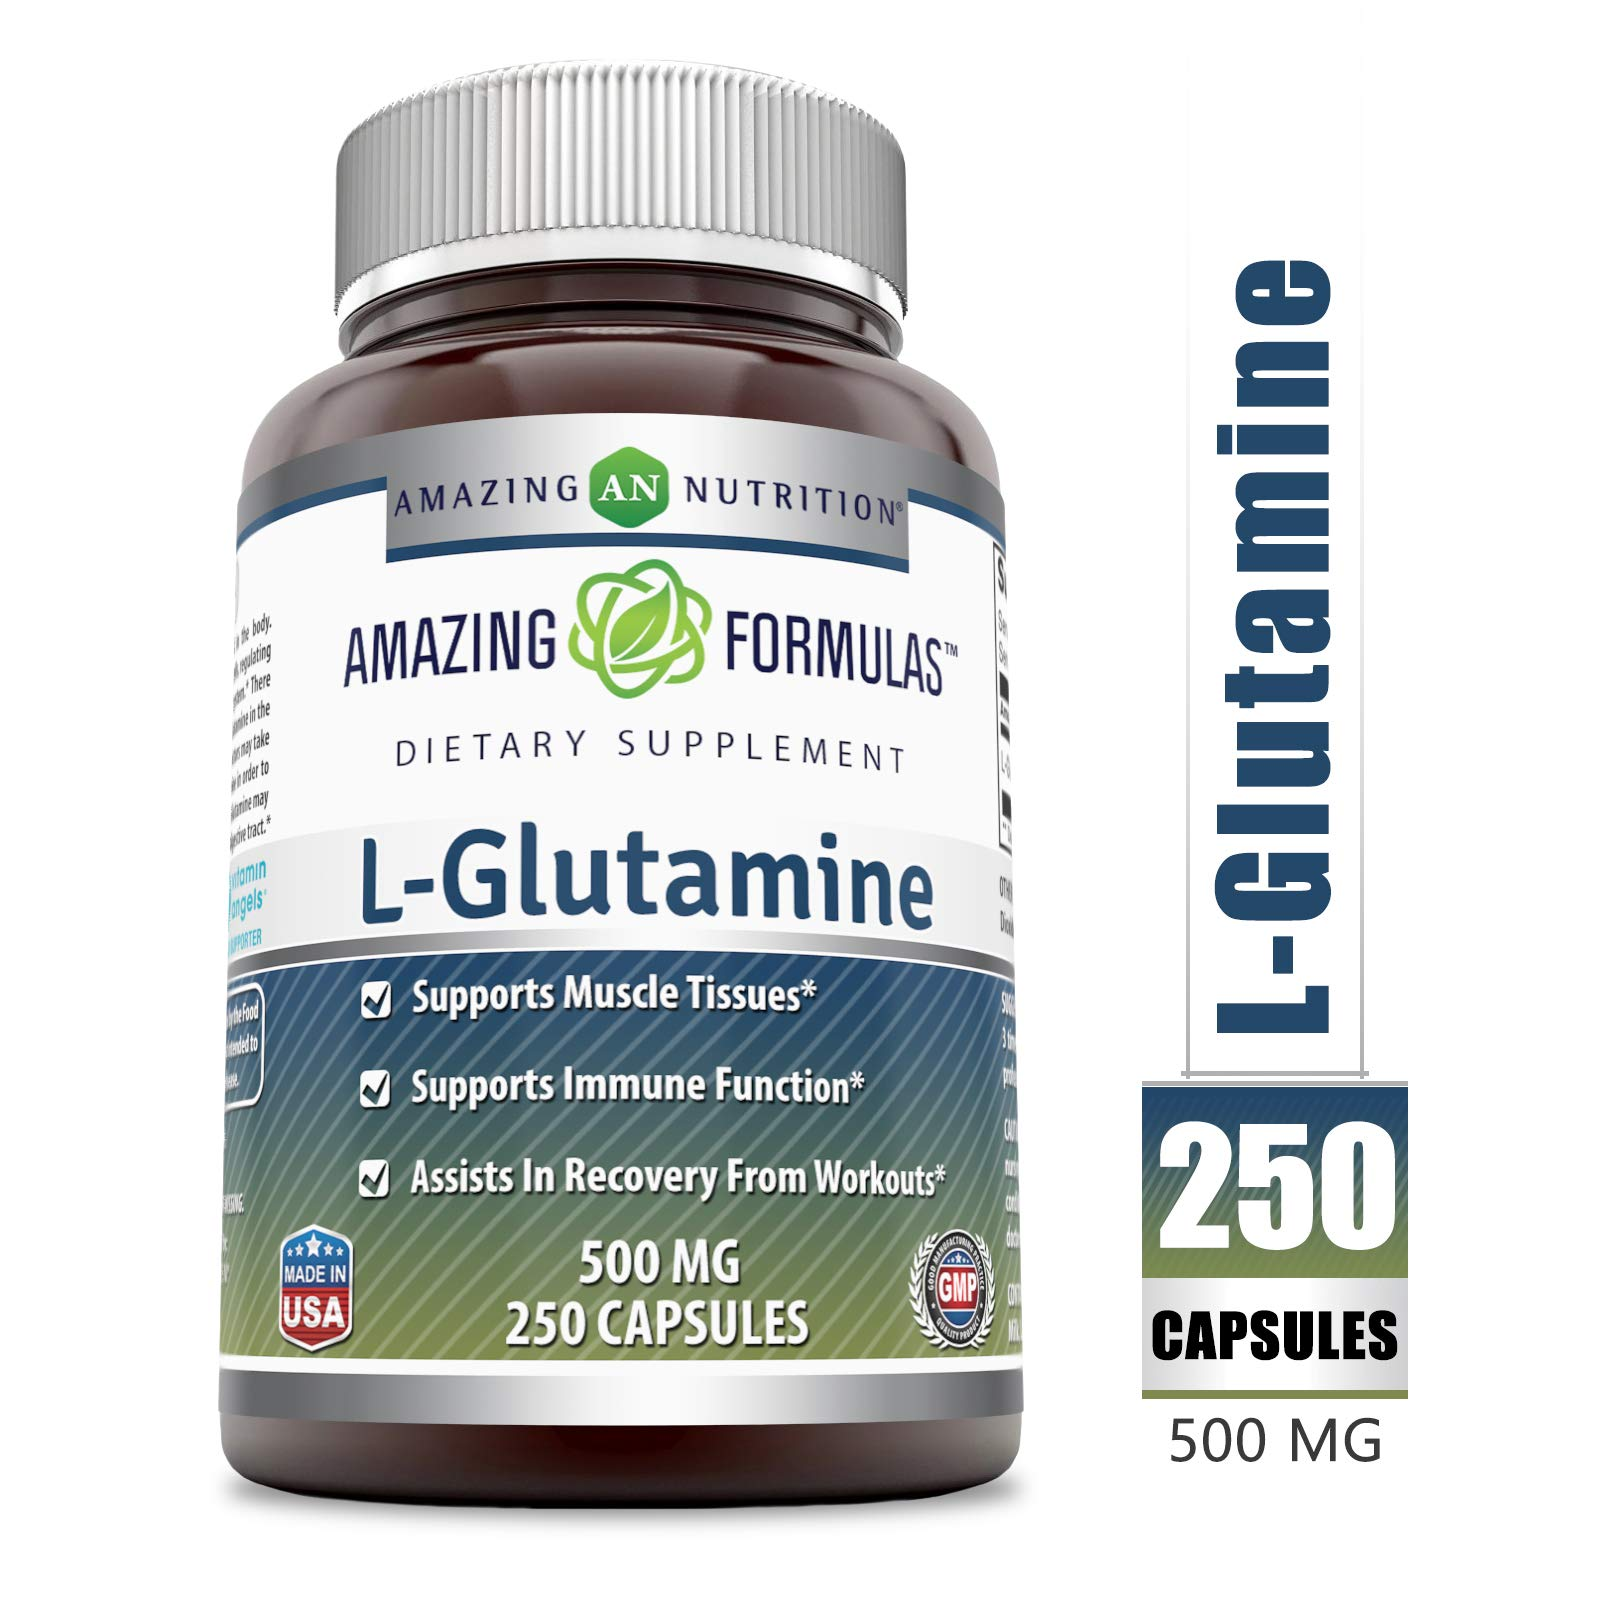 Amazing Formulas - L-Glutamine Dietary Supplement - 500 Milligrams - 250 Capsules (Non-GMO) - Promotes a Healthy Immune System - Supports Muscular System* by Amazing Nutrition